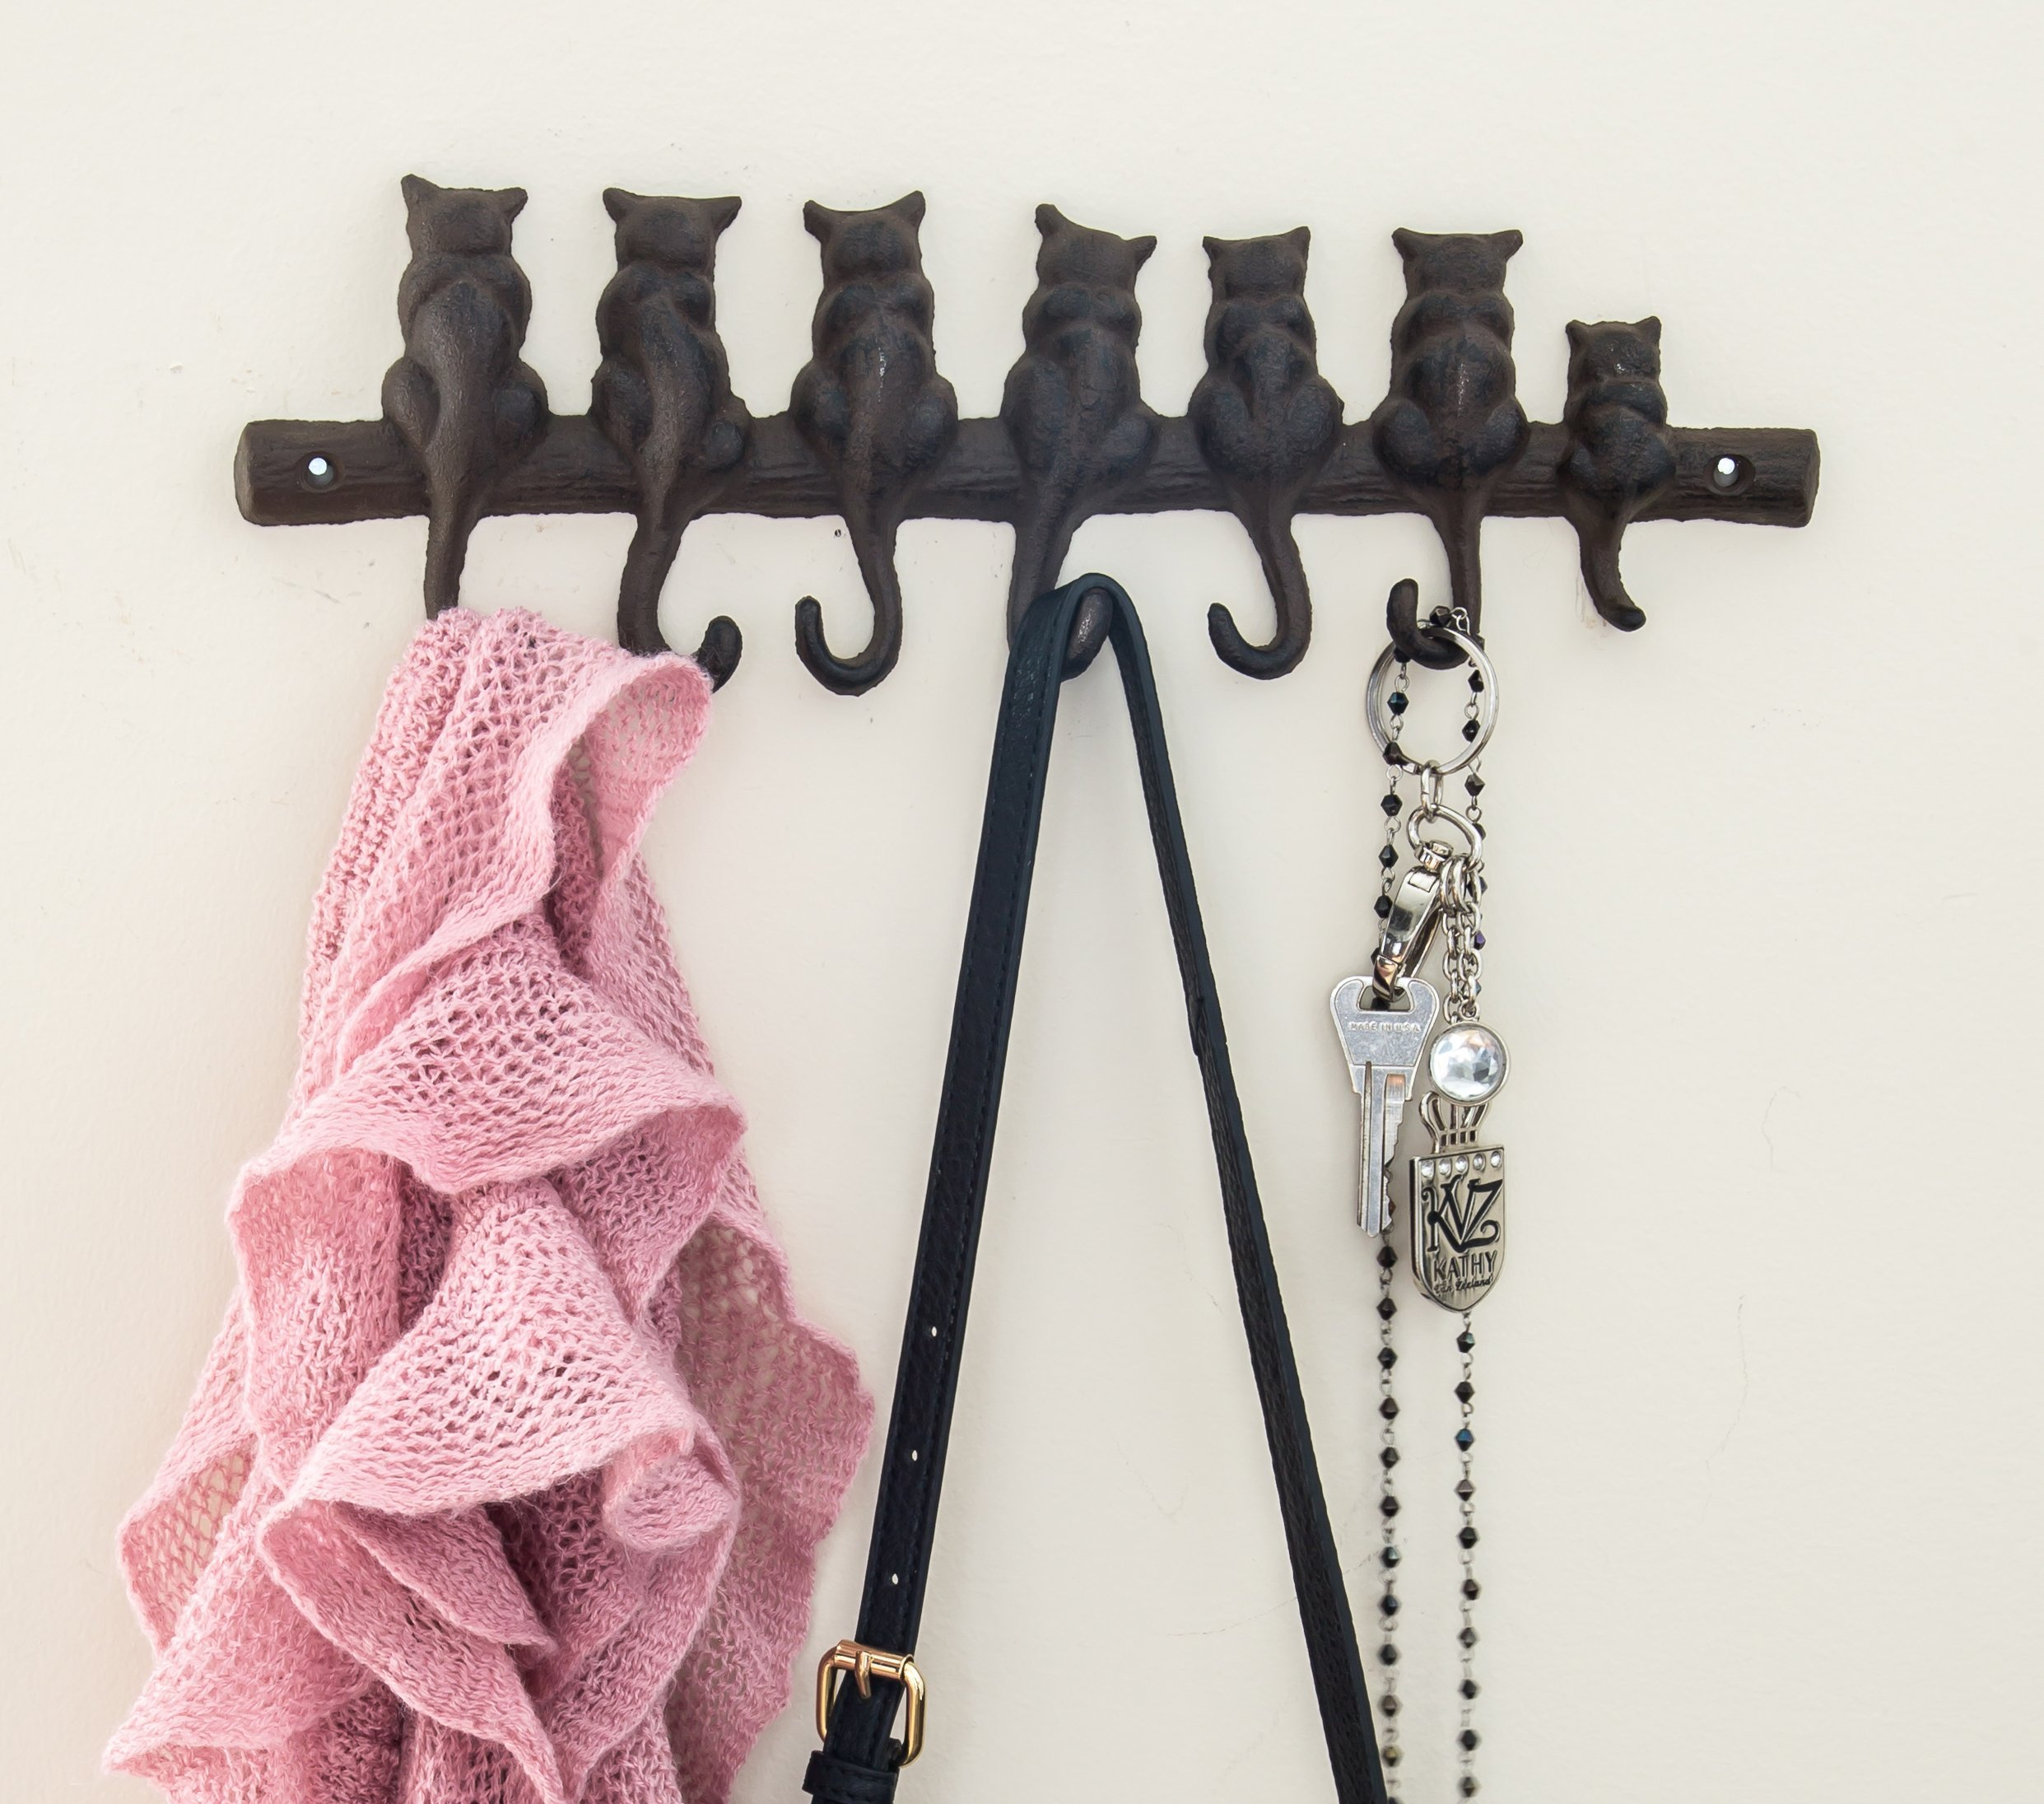 """Comfify 7 Cats Cast Iron Wall Hanger - Decorative Cast Iron Wall Hook Rack - Vintage Design Hanger with 4 Hooks - Wall Mounted 